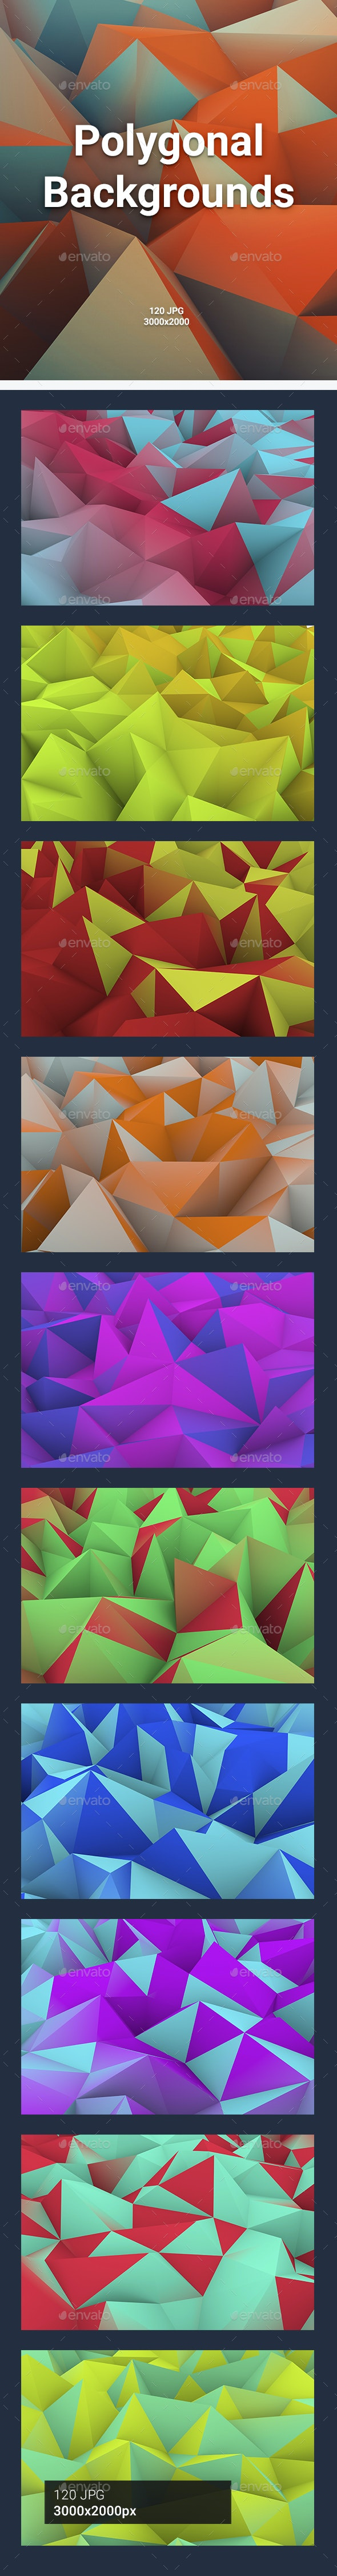 120 Polygonal Backgrounds - Abstract Backgrounds